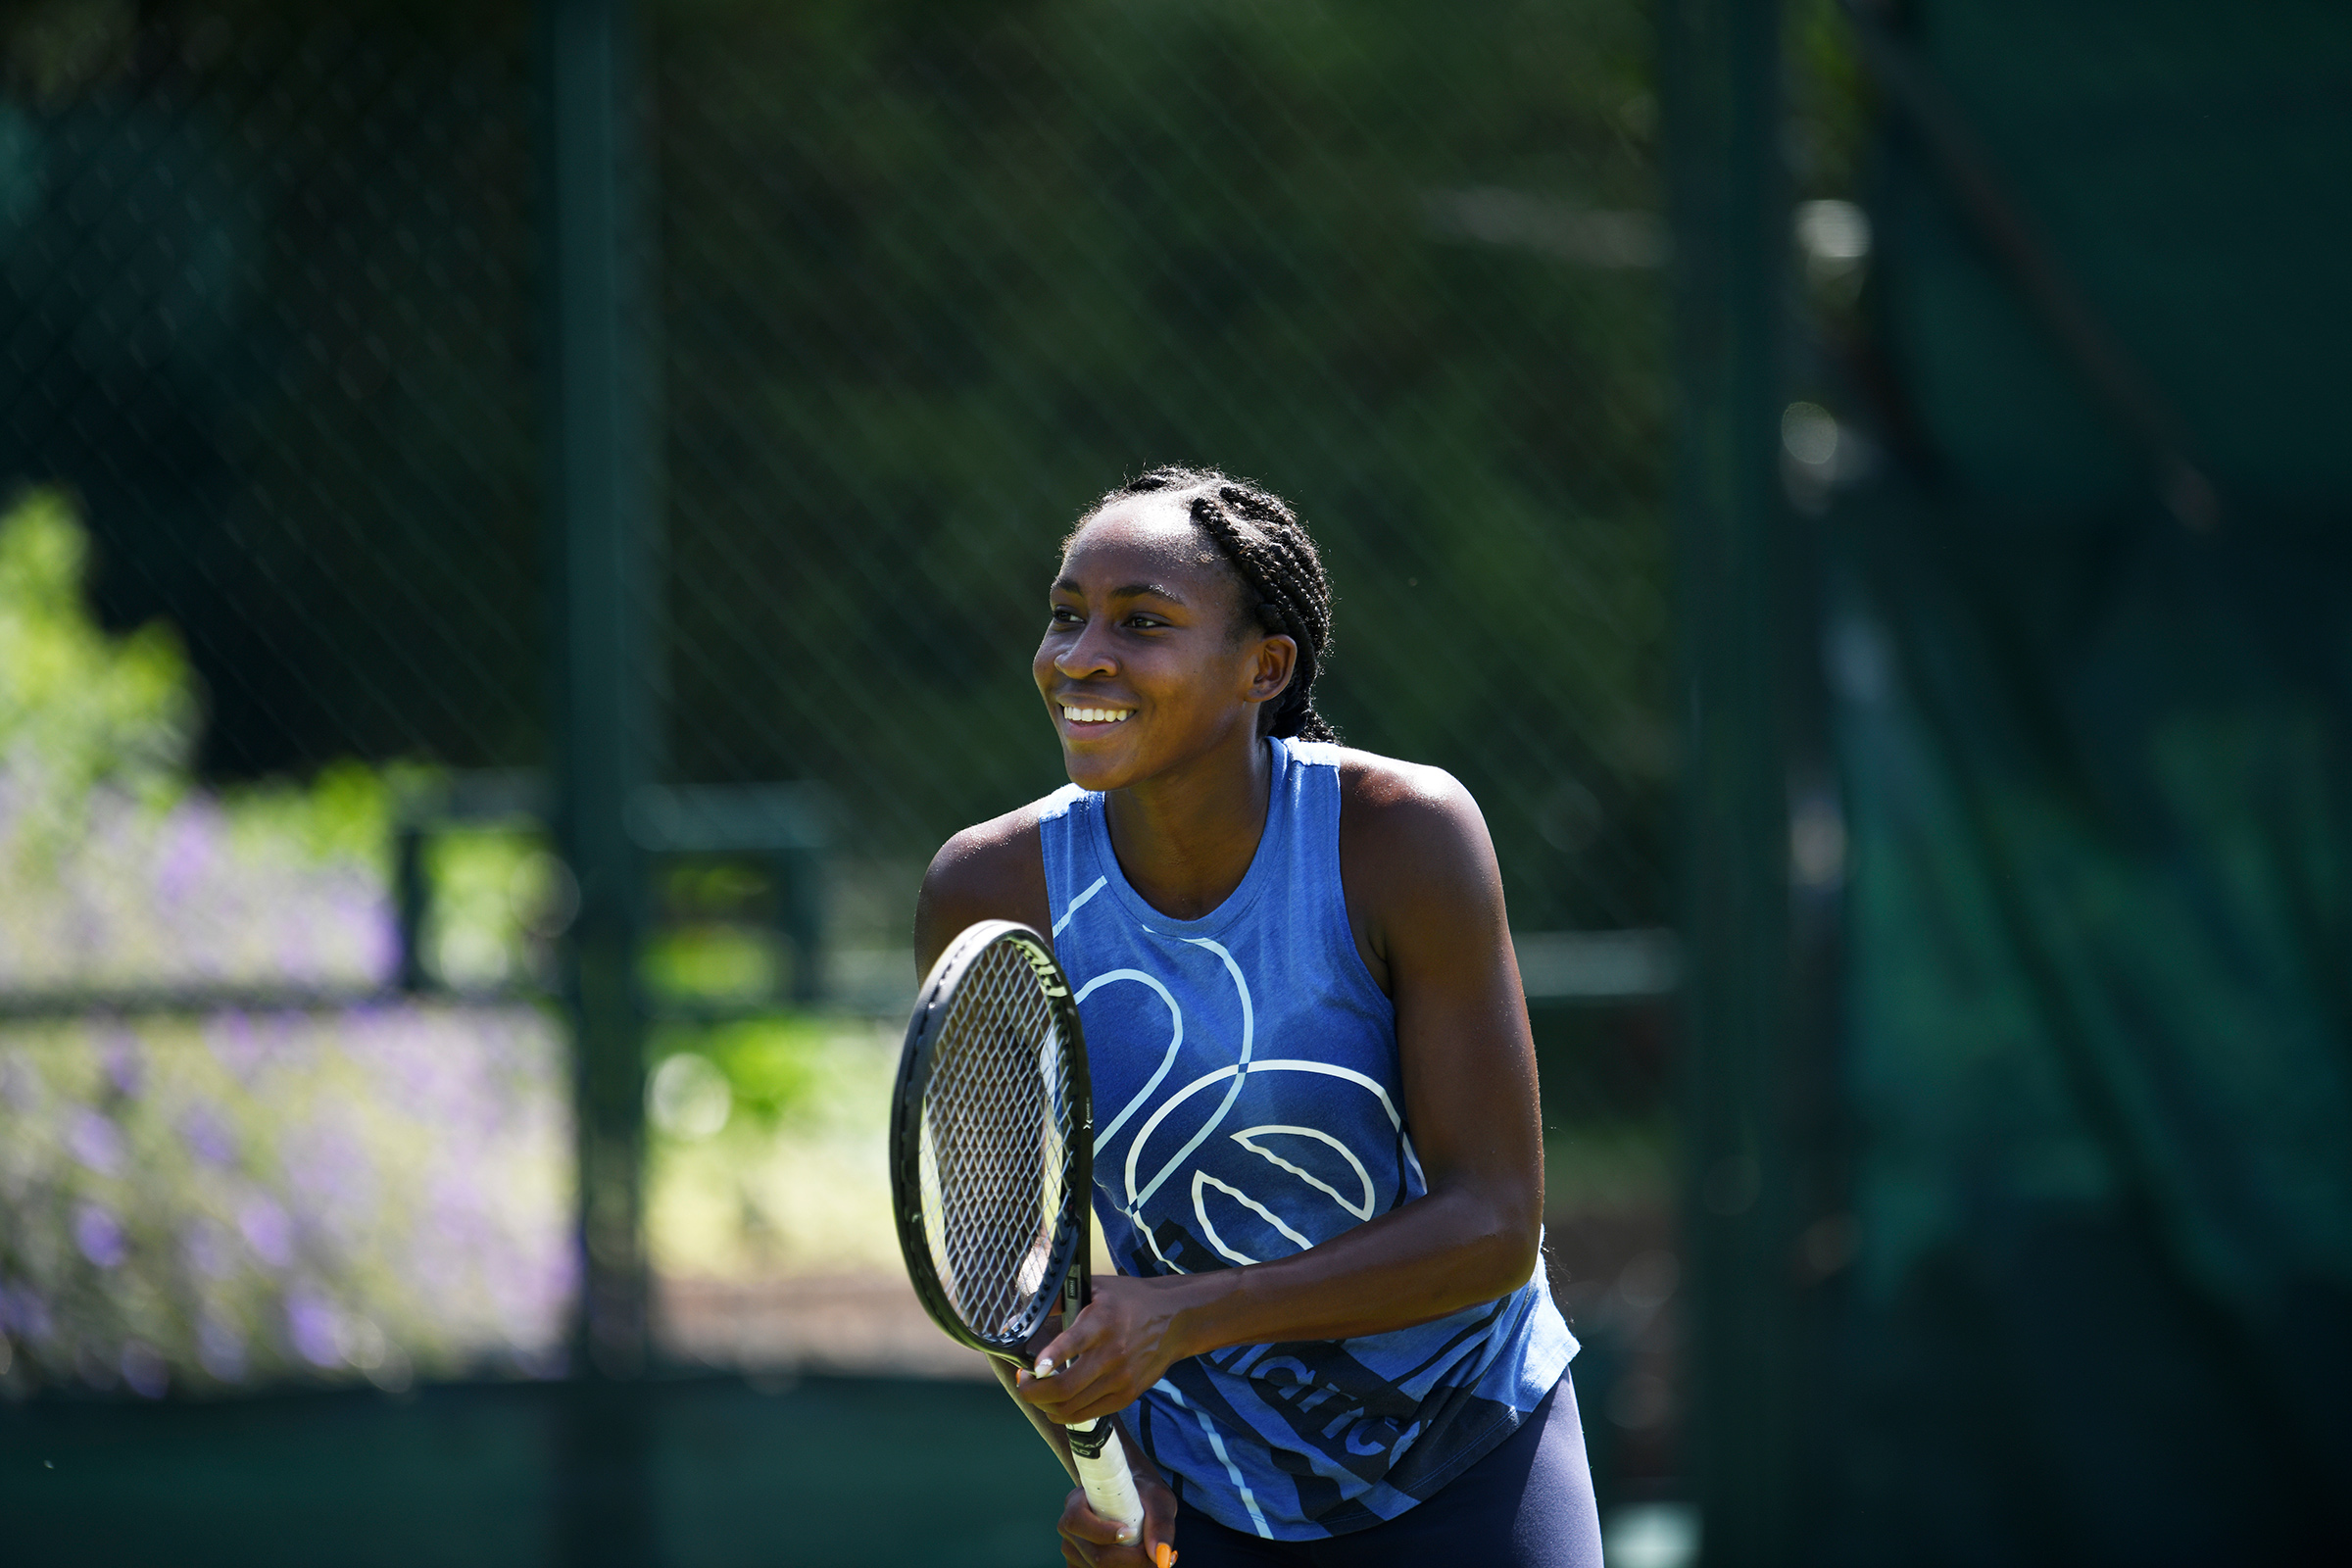 """I learned that I'm capable of a lot of things. I��learned to fight,"" Coco Gauff, describing lessons from Wimbledon, where she advanced to the fourth round."